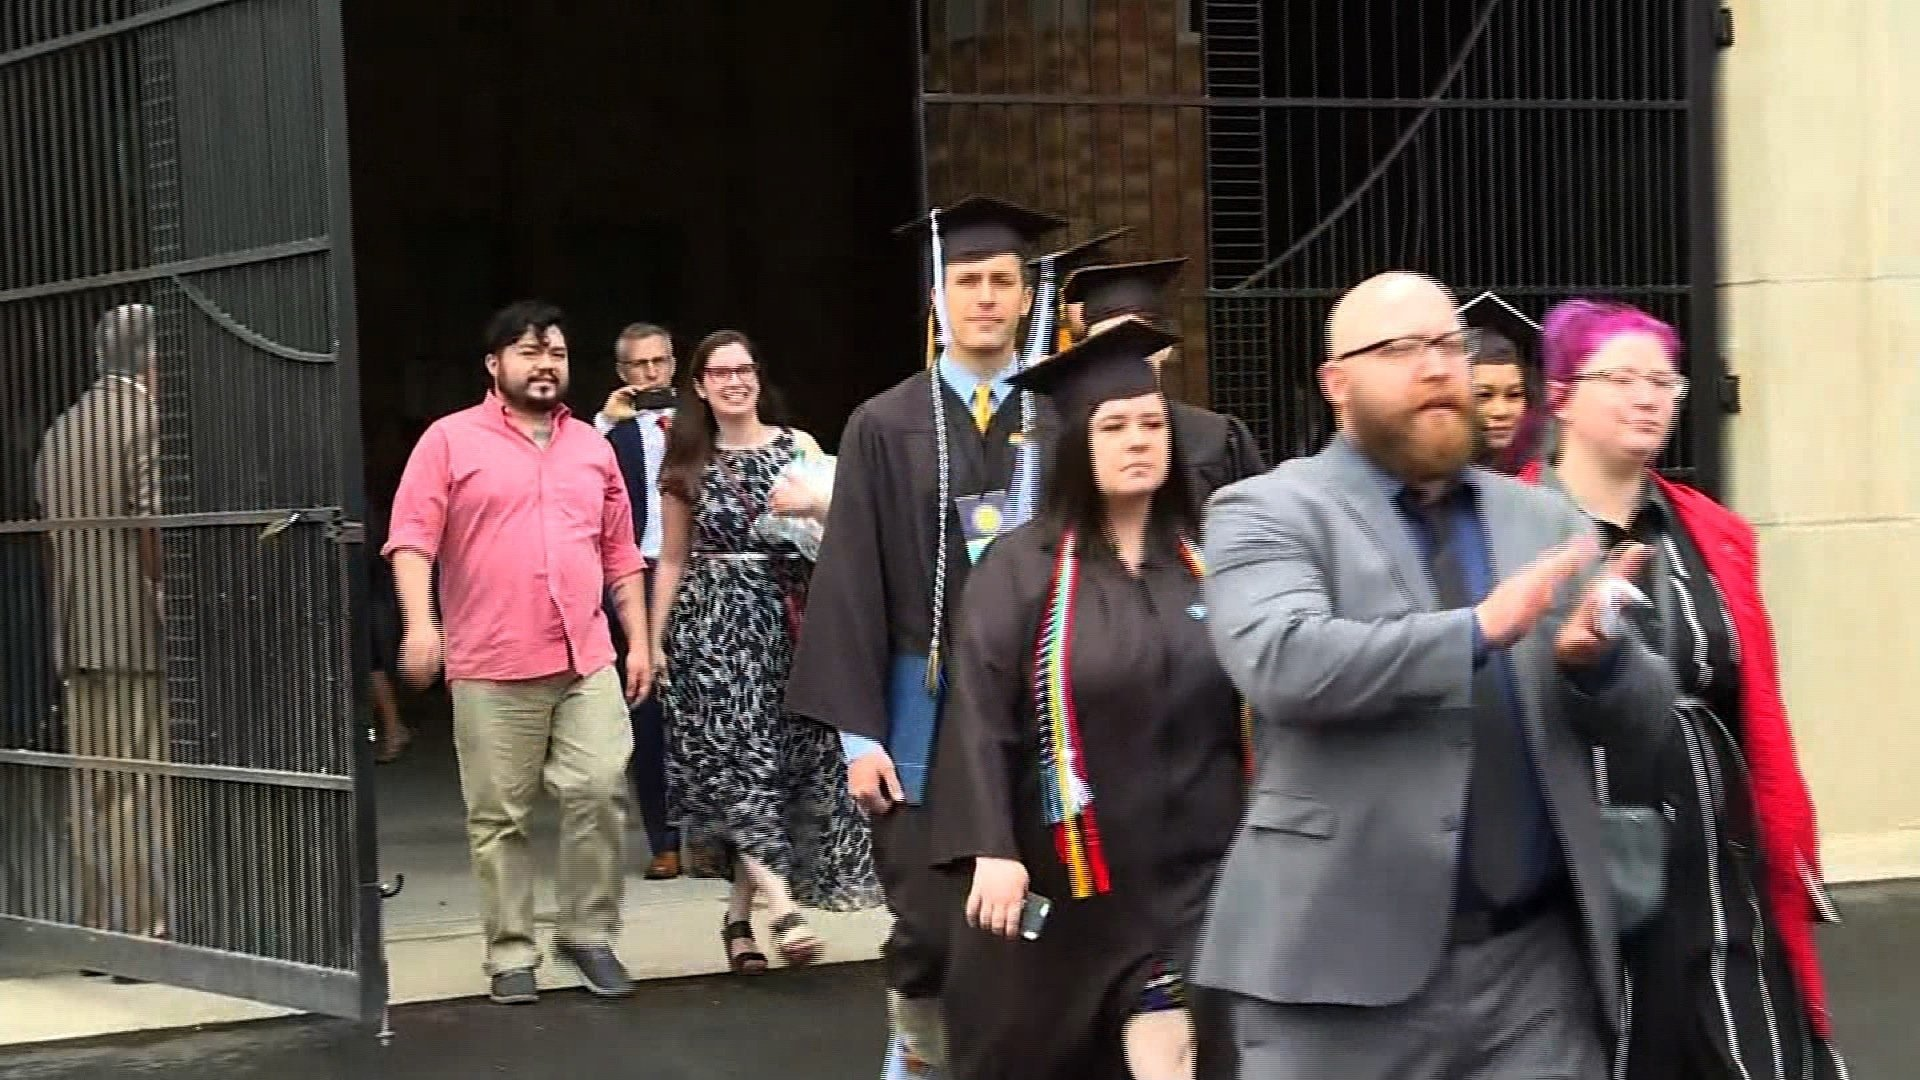 Notre Dame Grads Walk Out During Mike Pence's Commencement Speech